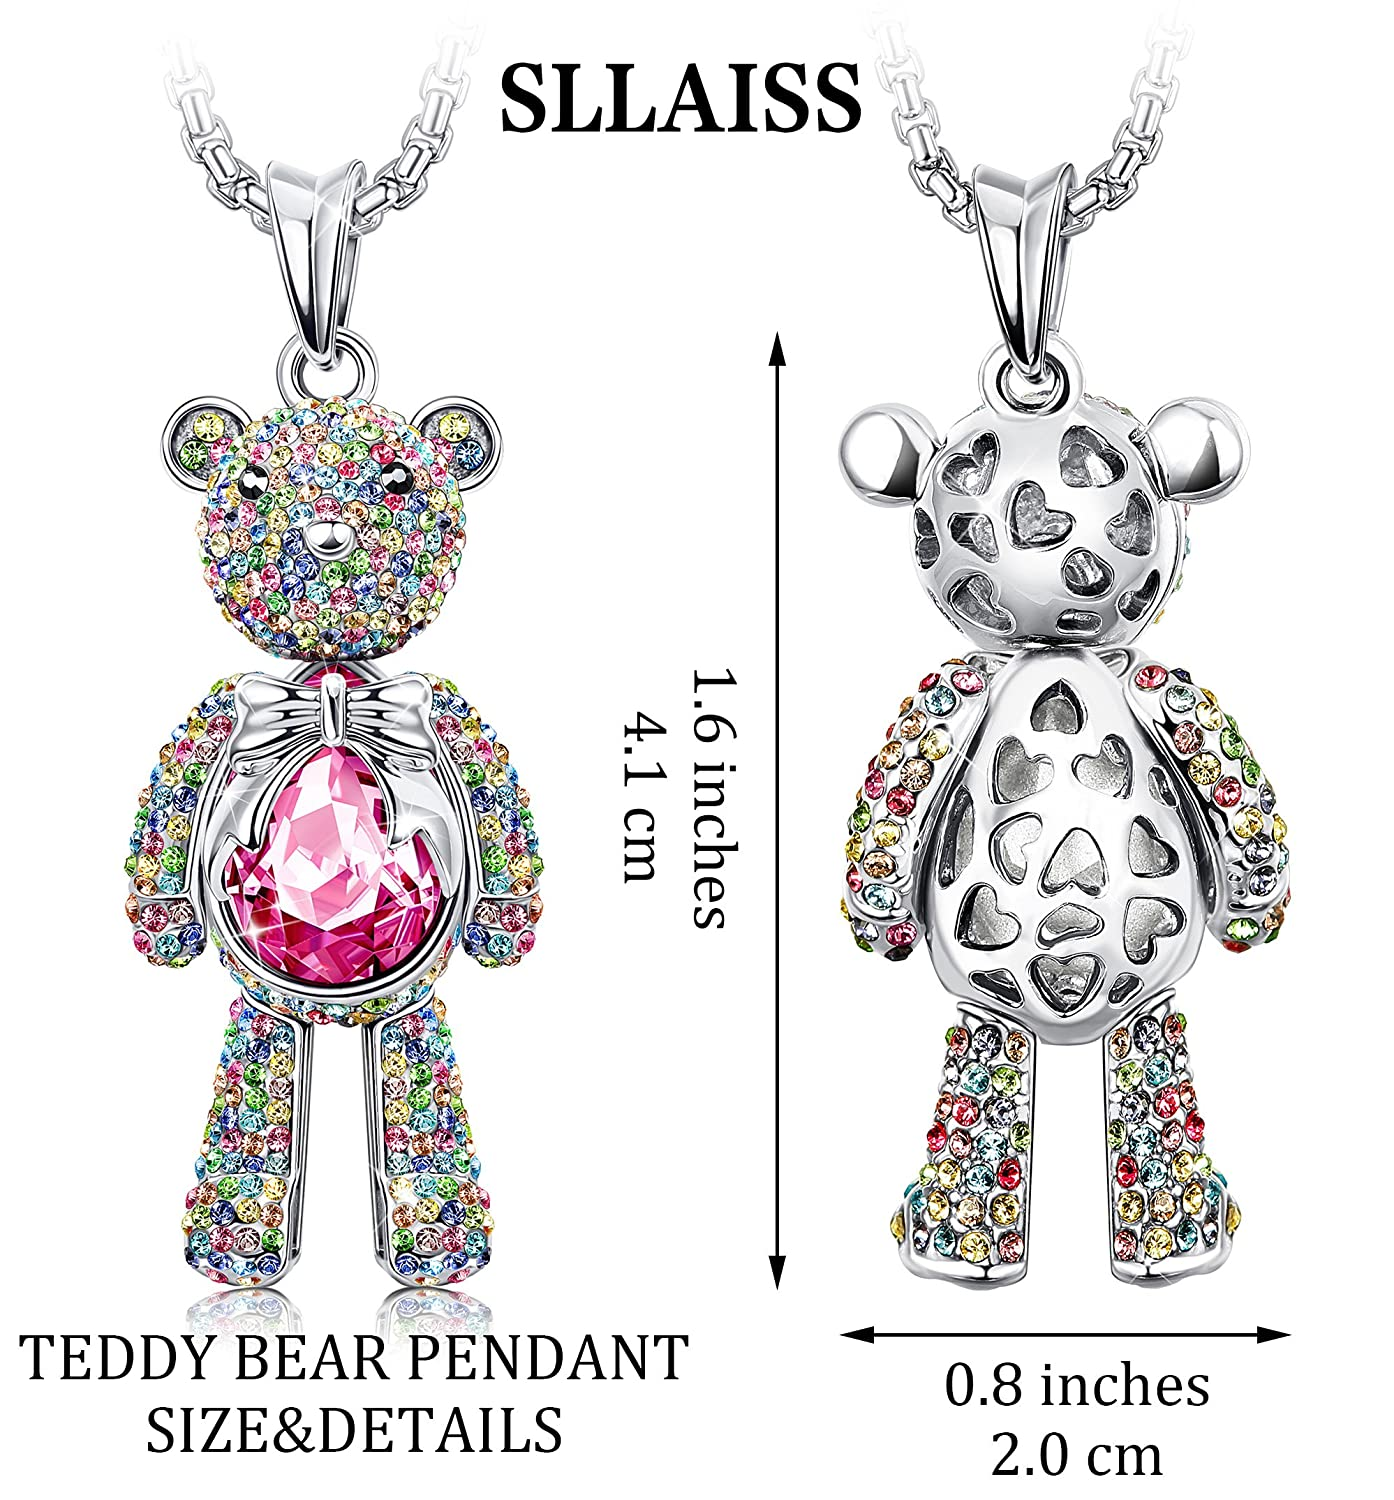 cuddle teddy bear crystal products spinningdaisy necklace pendant